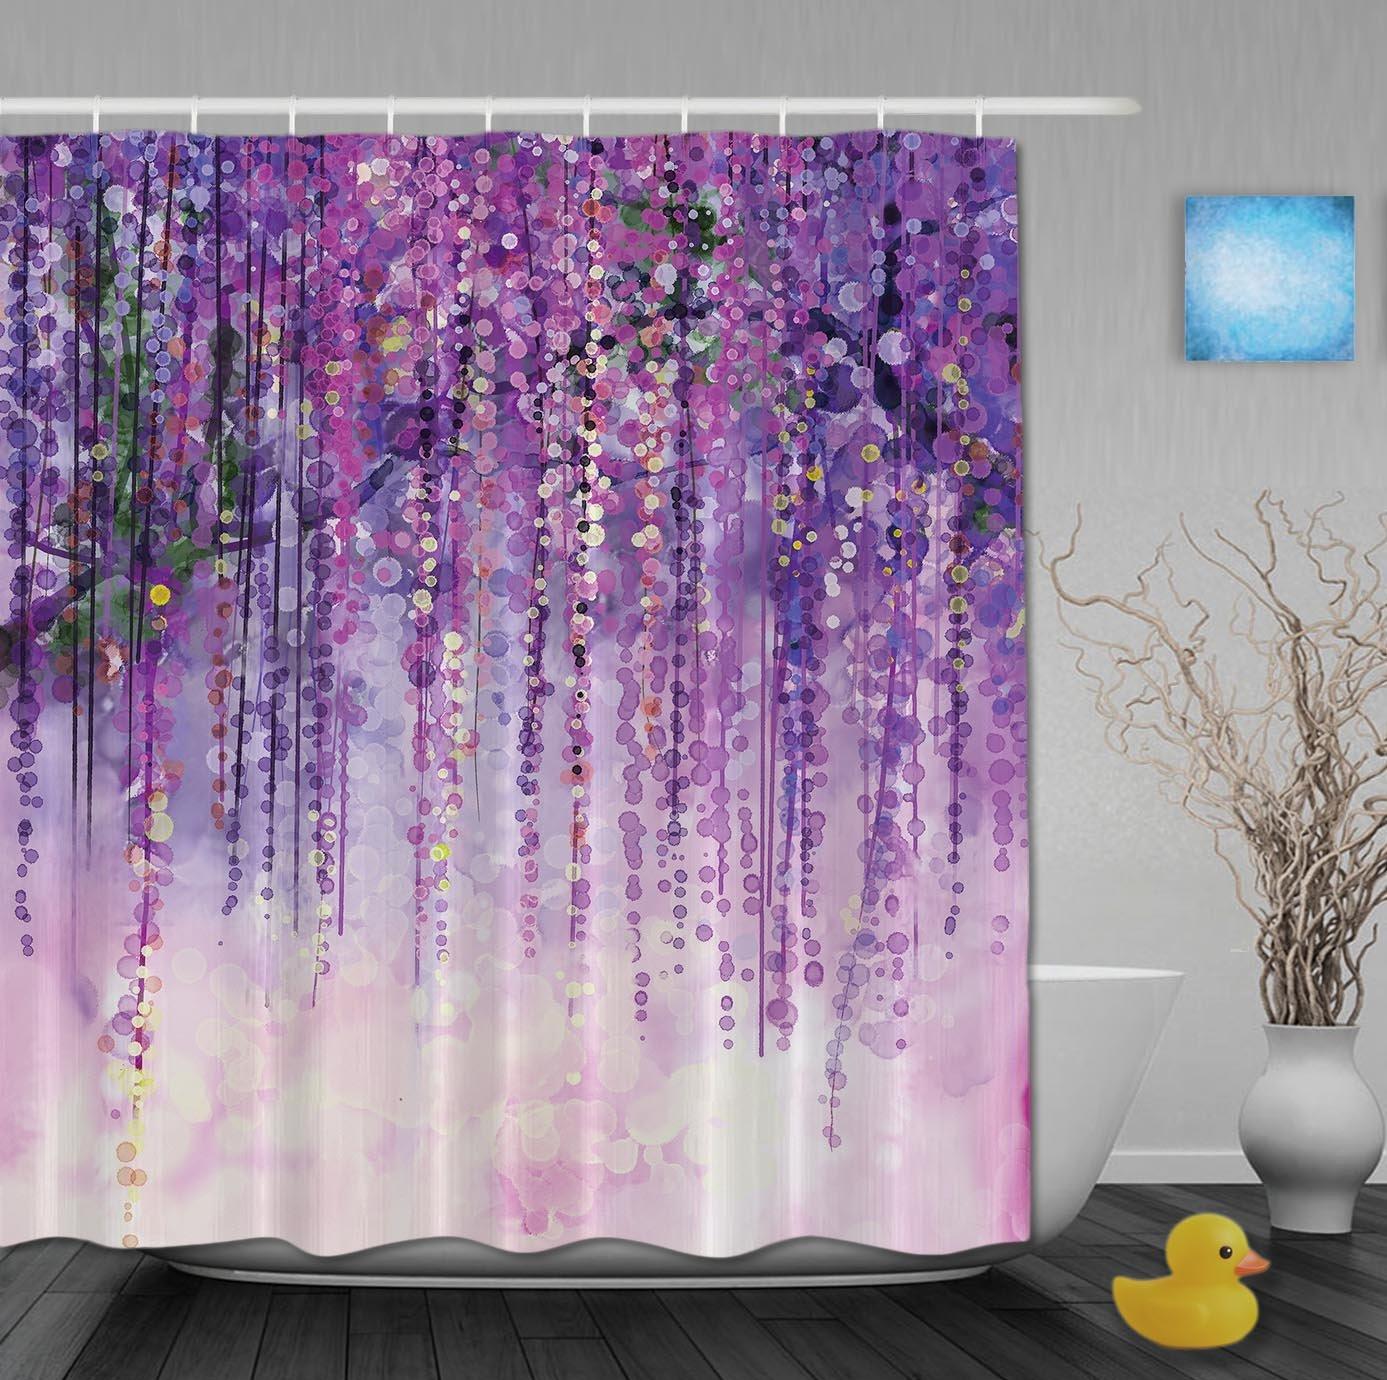 YUNBABA Art Printing Decor Collection Spring Landscape Purple Floral Bathroom Shower Curtains Mildew And Fade Resistant Waterproof Polyester Fabric 72x66 Inch